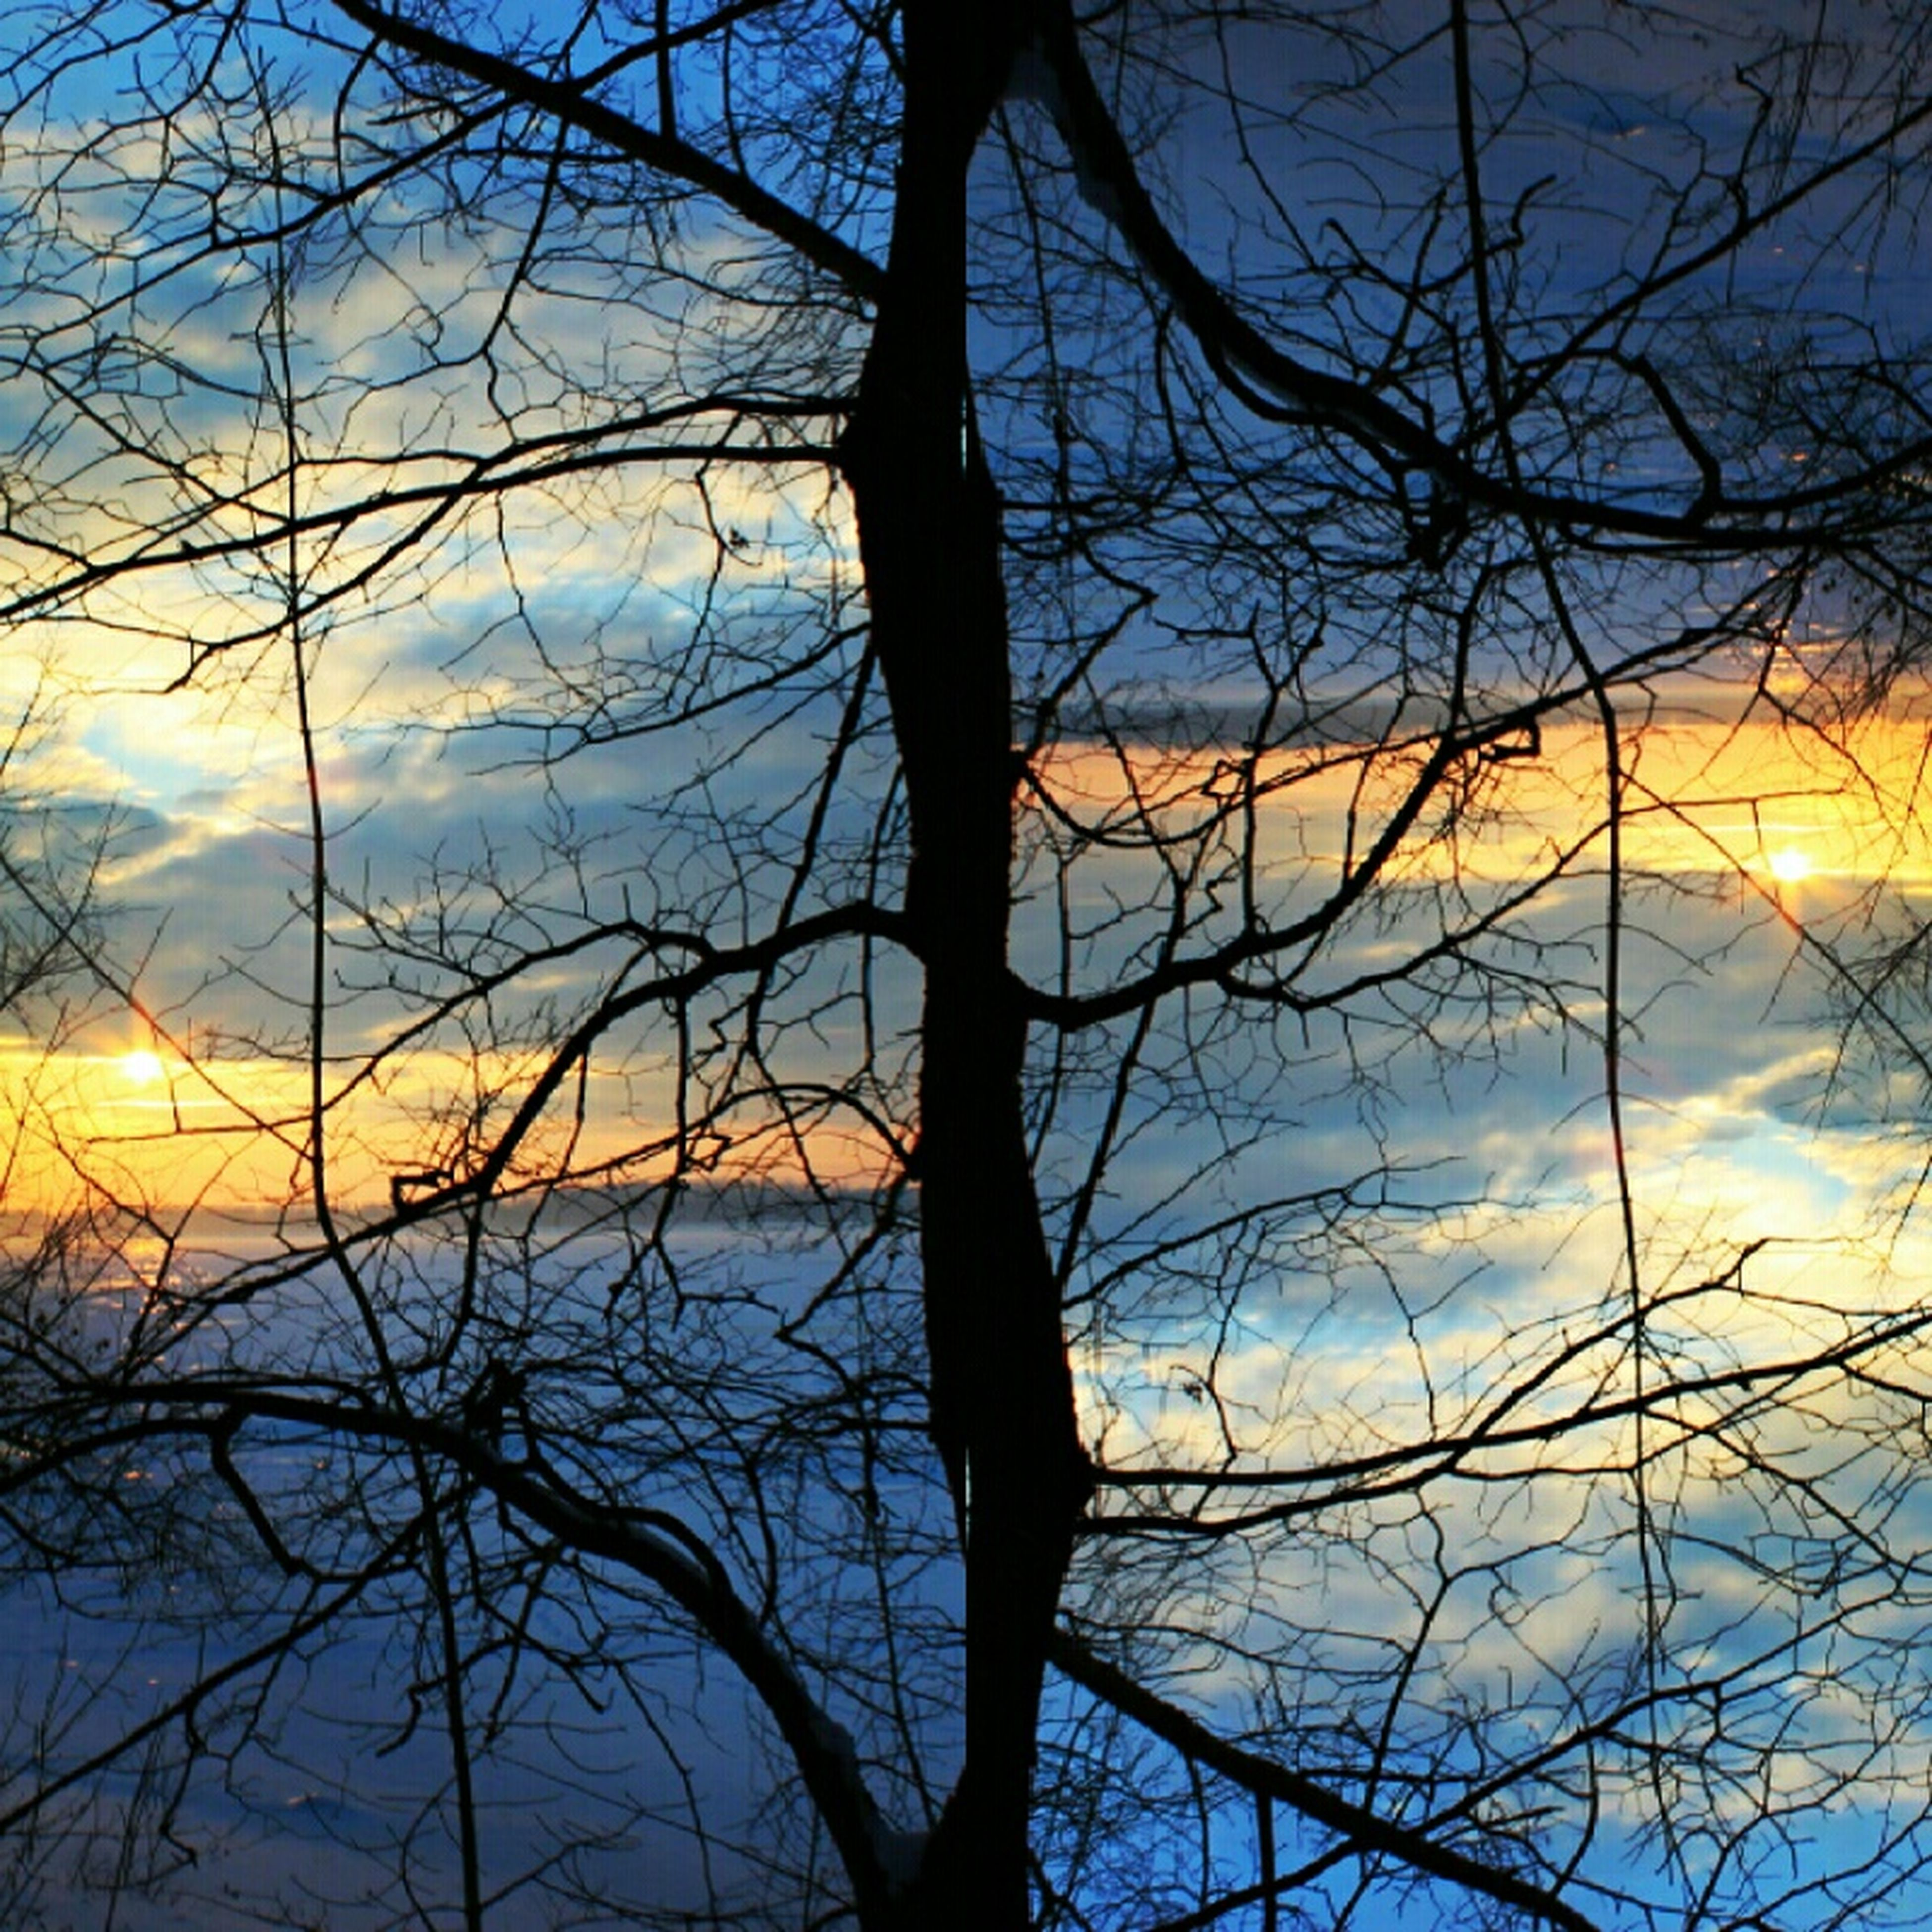 bare tree, sunset, sky, tranquility, tranquil scene, silhouette, scenics, beauty in nature, branch, nature, tree, idyllic, cloud - sky, cloud, majestic, dusk, water, outdoors, tree trunk, no people